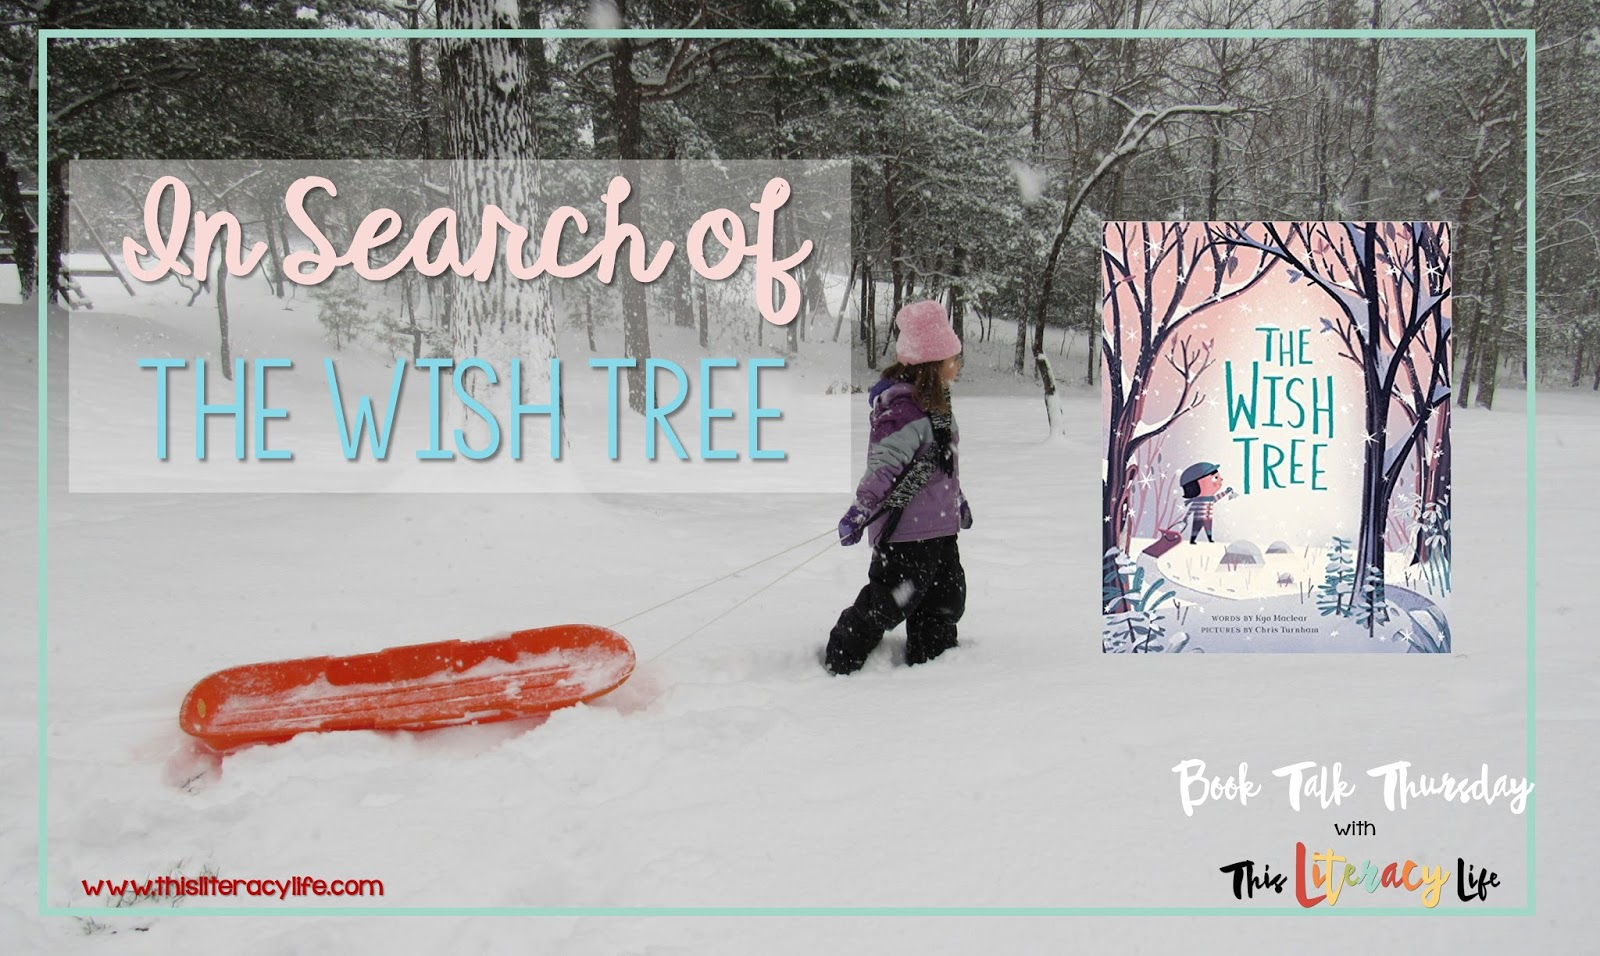 Wouldn't it be great to have a wish tree? The Wish Tree is a fantastic book that shows that everyone has their own wish tree somewhere!